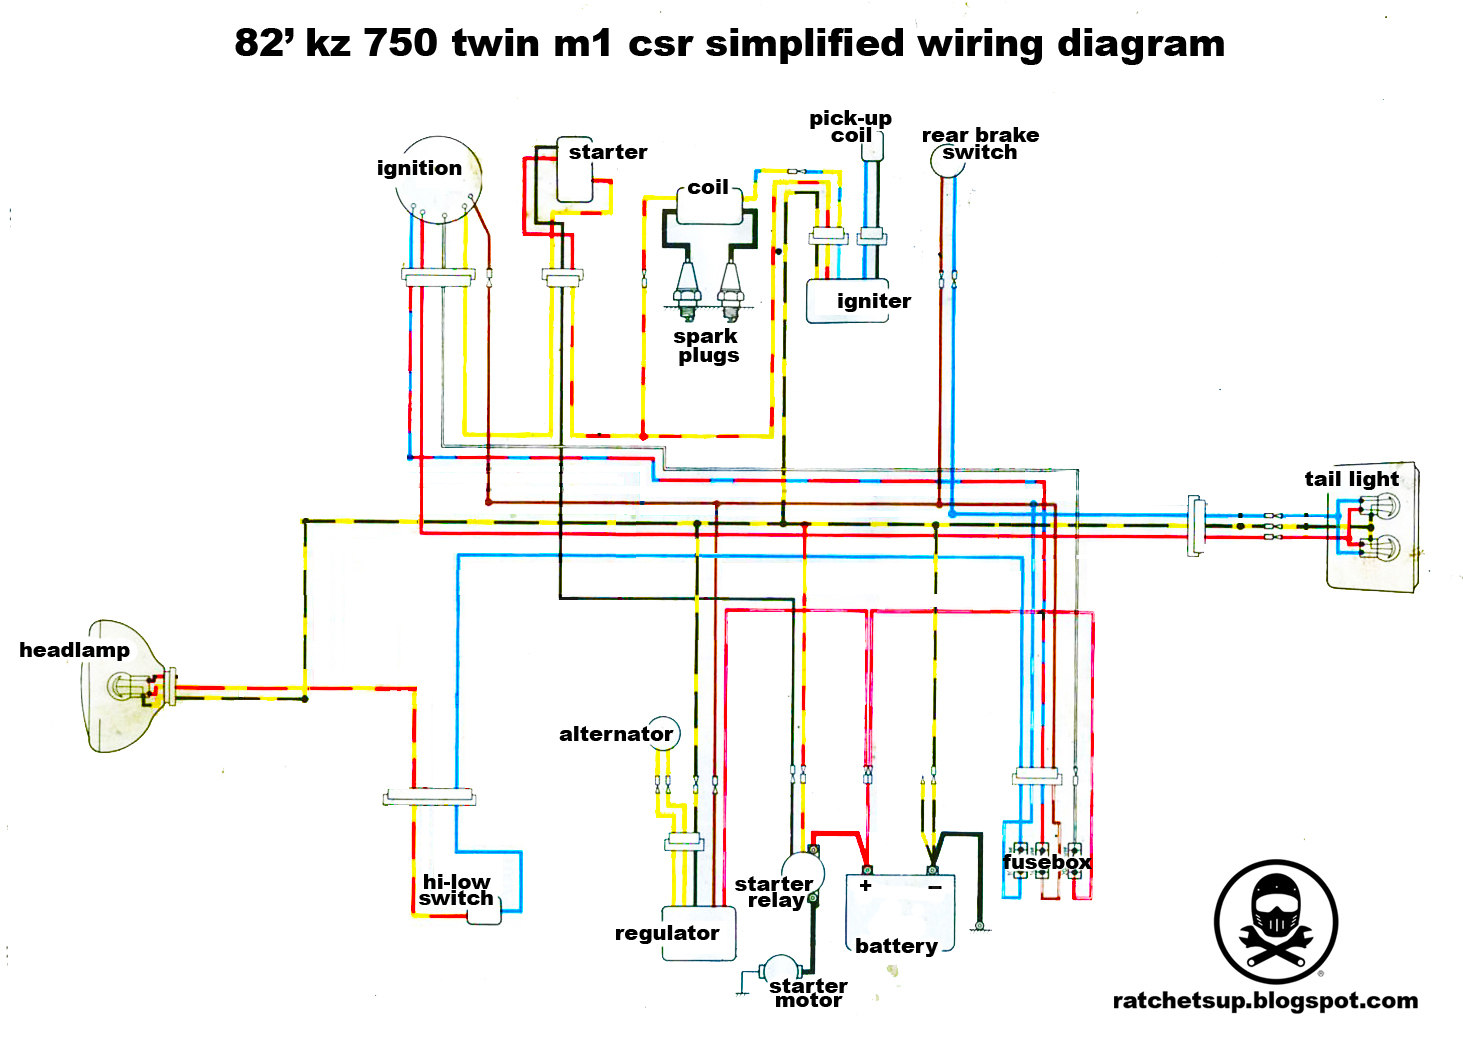 82 Gpz750 Wiring Diagram Libraries Kz750 Detailed Diagrams82 Diagrams Schema H2